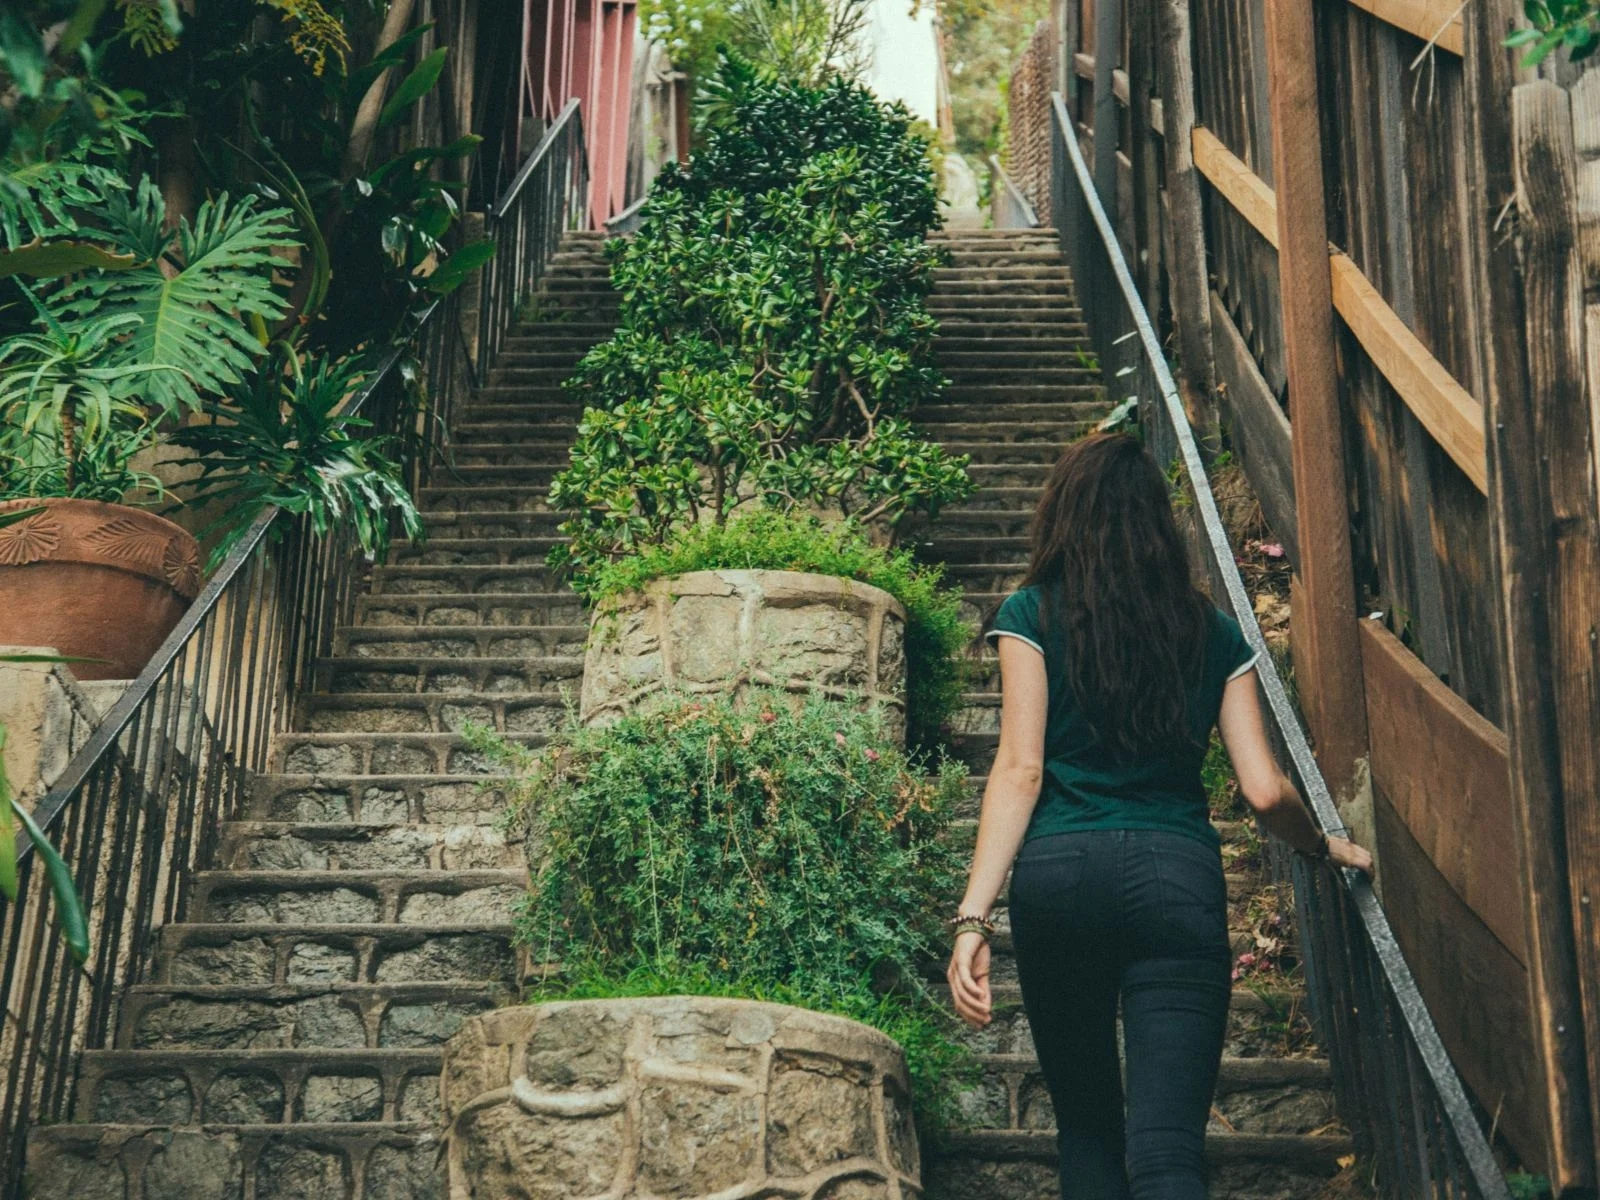 Discover The Hidden Stairs Of Los Angeles Discover Los Angeles   Best Stone For Outdoor Steps   Concrete Steps   Garden   Stair Tread   Limestone   Natural Stone